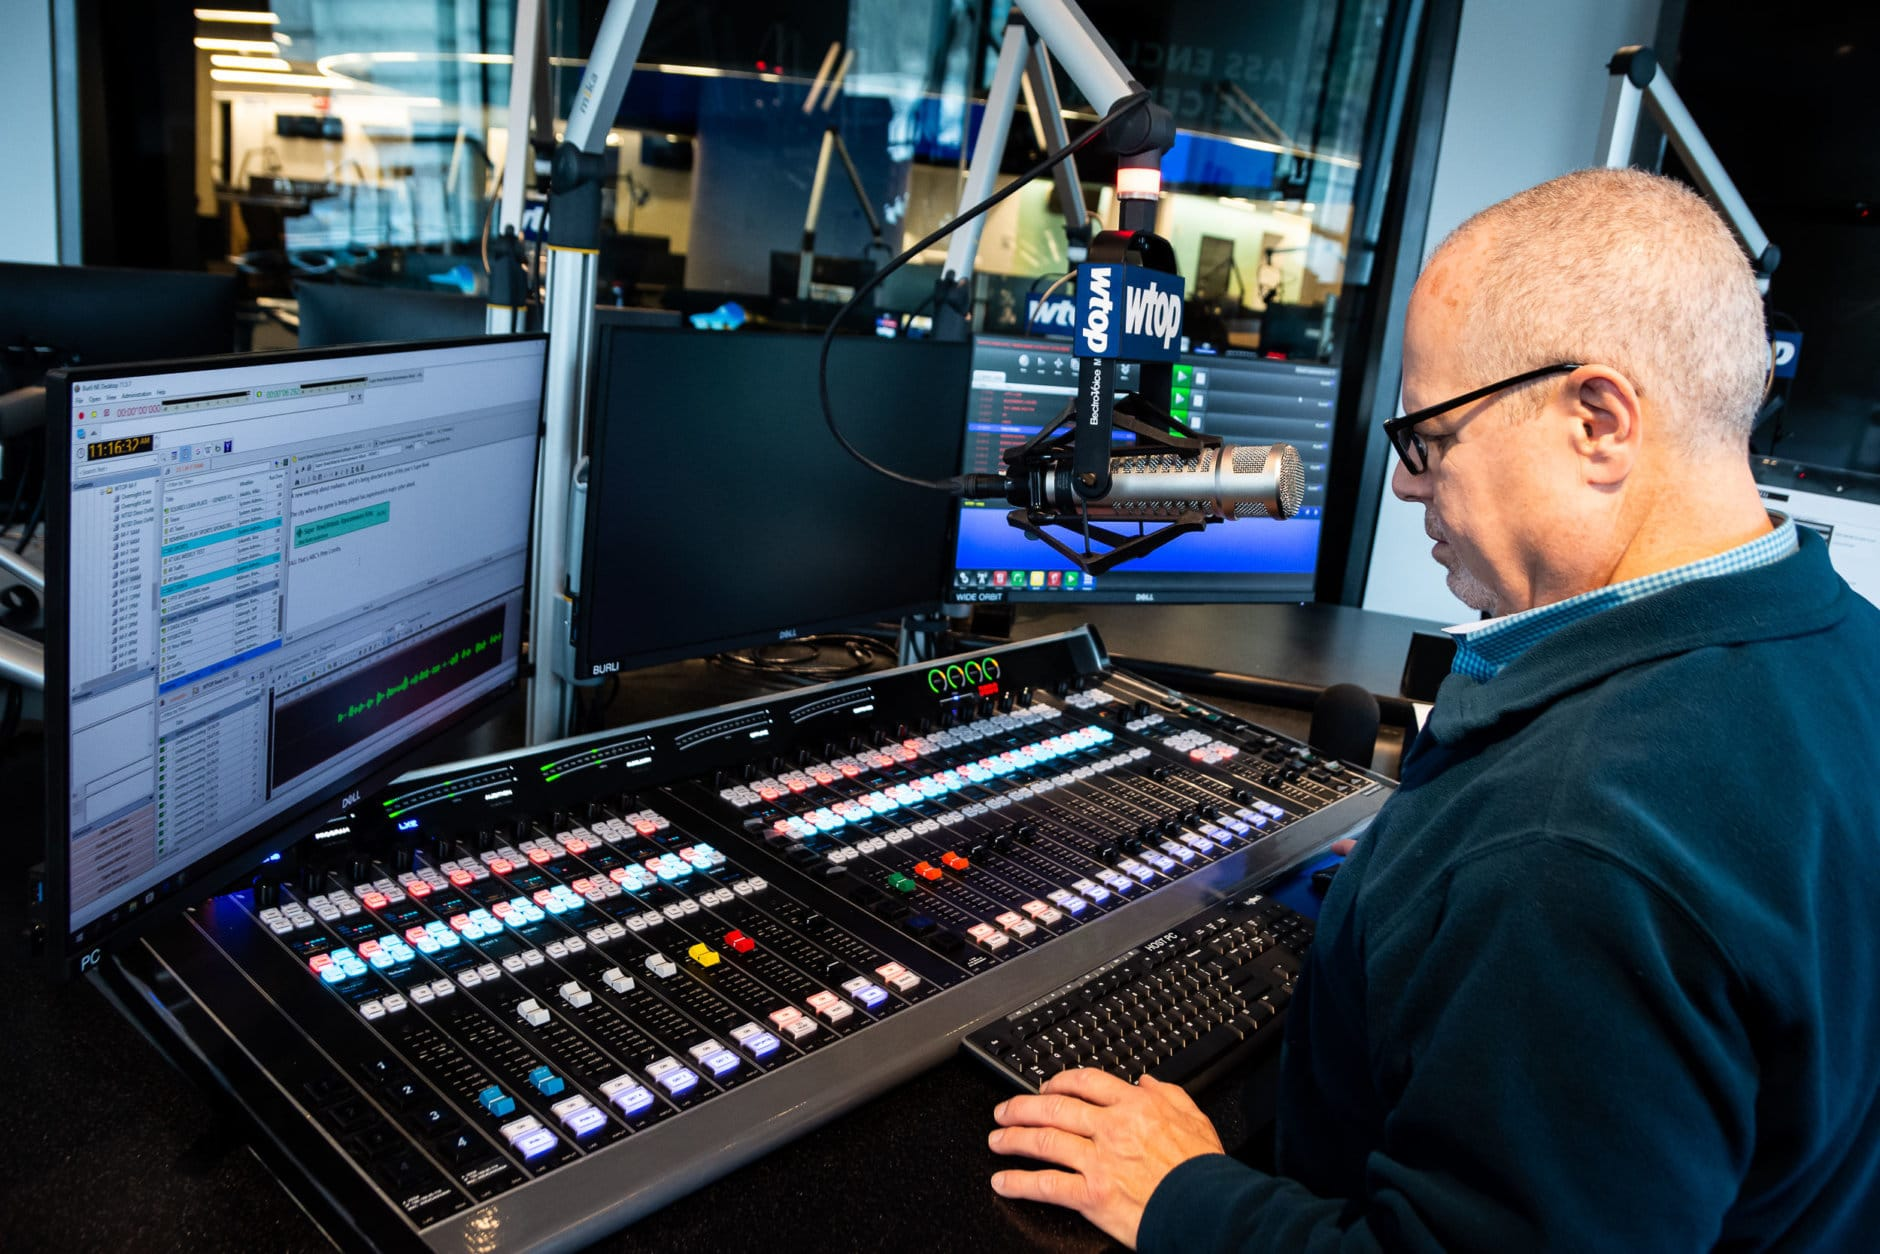 WTOP anchor Bruce Alan mans the Glass-Enclosed Nerve Center's new mixing board, which controls audio levels and can feed listener calls into the broadcast. (WTOP/Alejandro Alvarez)